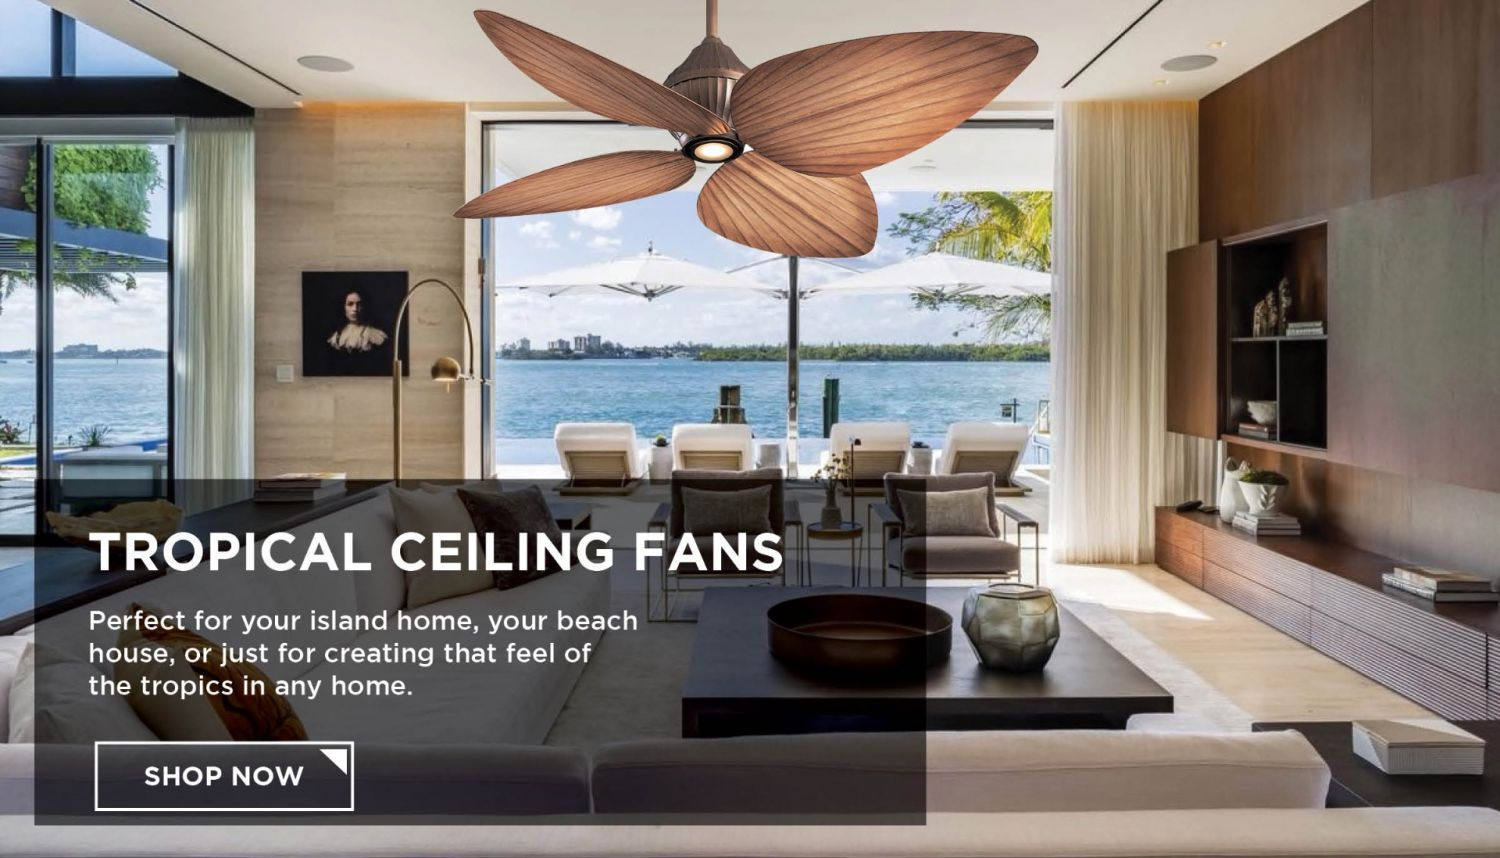 /designer-ceiling-fans/tropical-ceiling-fans-palm-bamboo.html